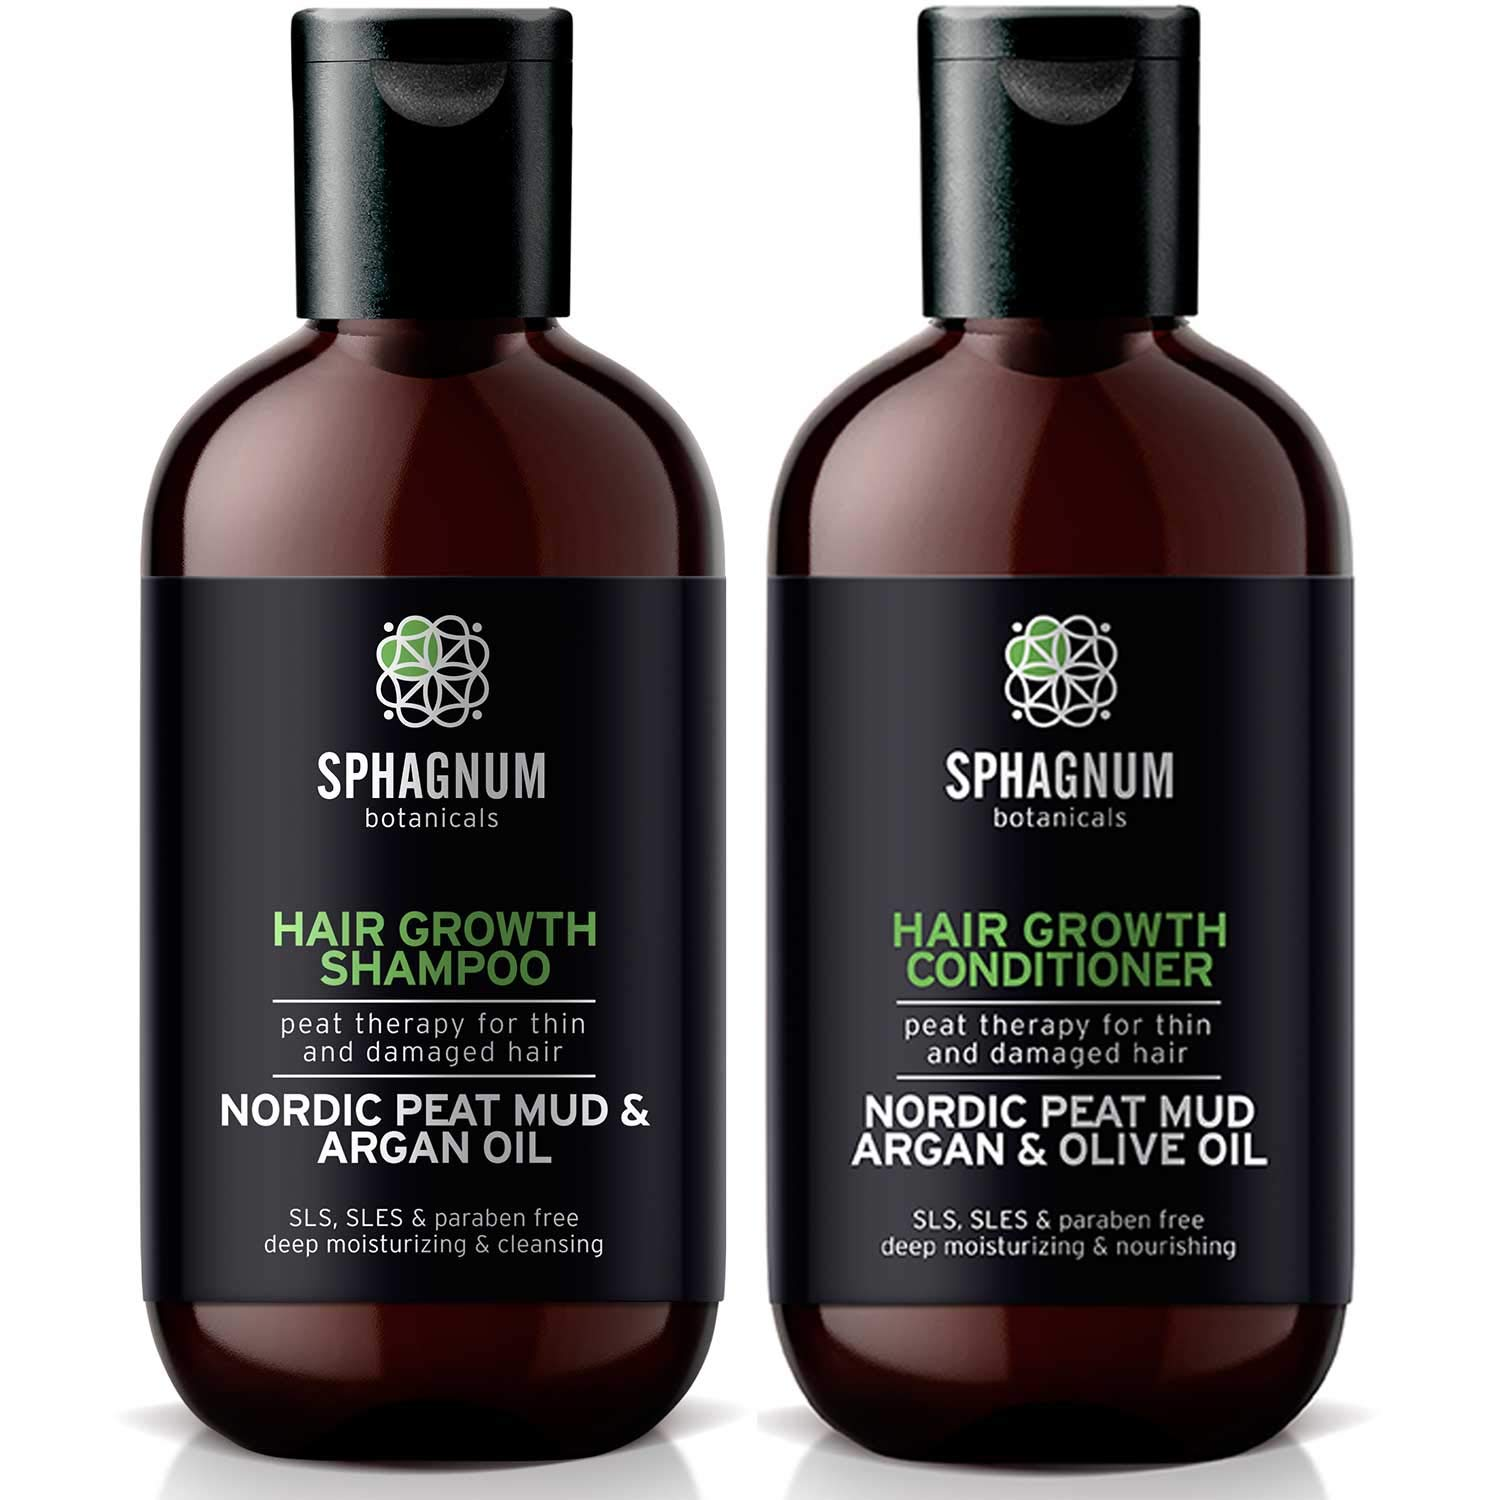 Hair Growth Shampoo and Conditioner - Natural Argan Oil Treatment with Effective Peat Mud for Thin and Damaged Hair. No SLS/Parabens. Powerful Organic DHT Blocker. Best for Hair Loss by Sphagnum Botanicals